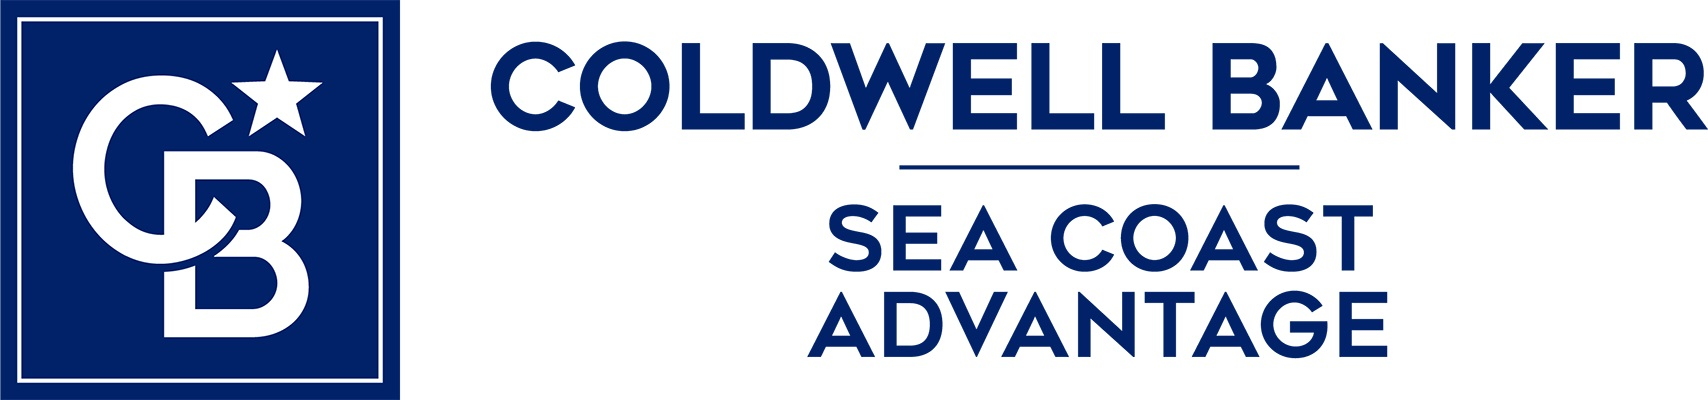 Sarah Walters - Coldwell Banker Sea Coast Advantage Realty